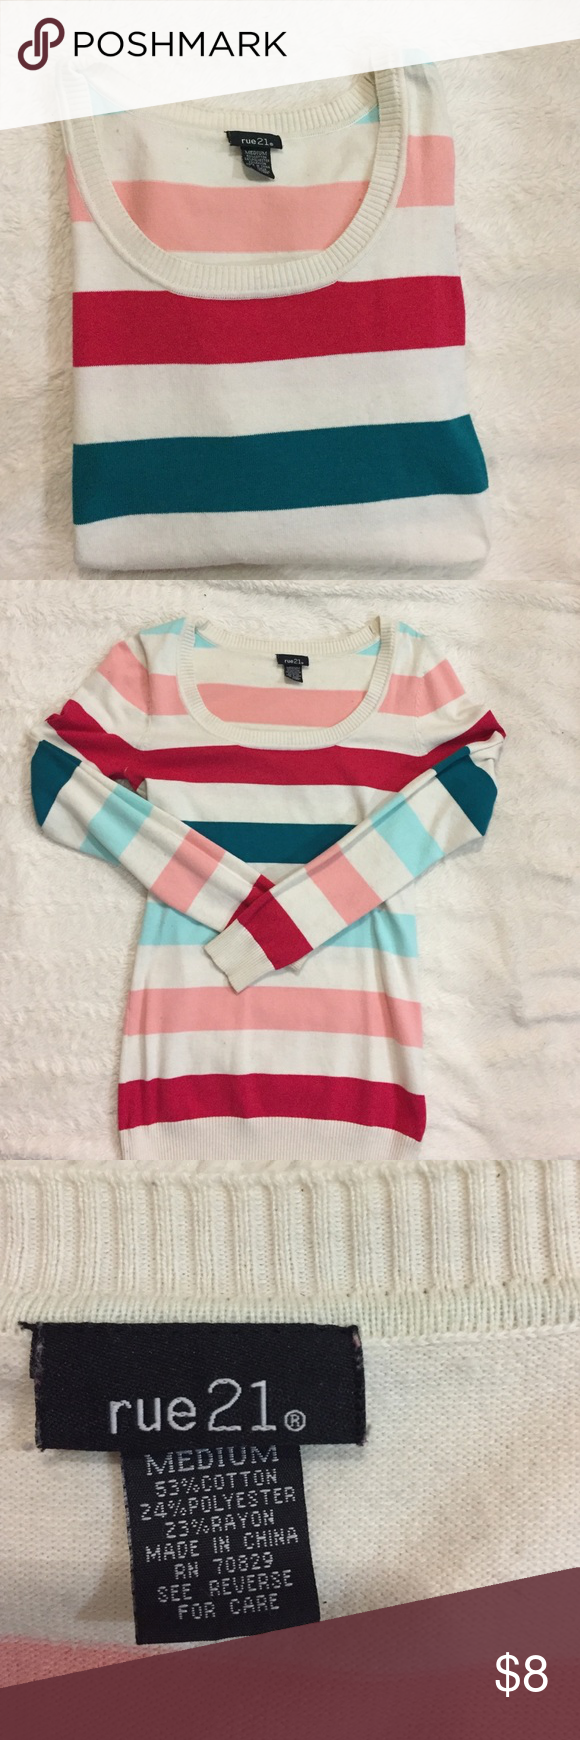 Rue 21 Multicolored Striped Sweater | Rue 21, Red lights and Scoop ...